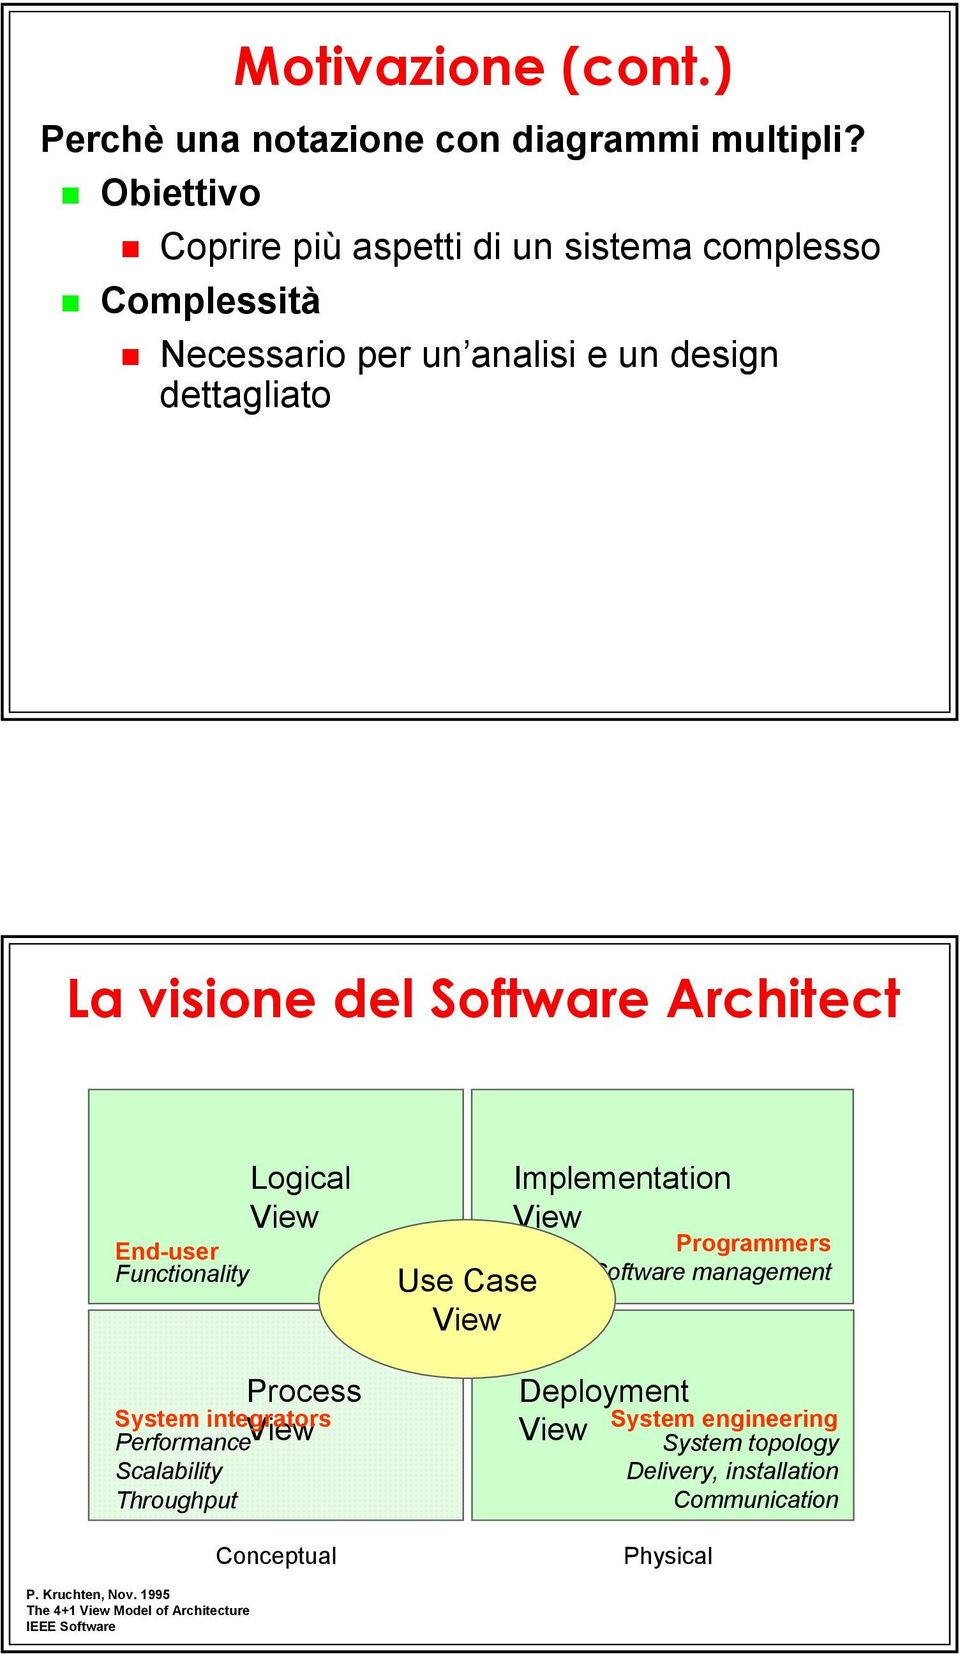 Architect End-user Functionality Logical View Process System integrators Performance View Scalability Throughput Conceptual Implementation